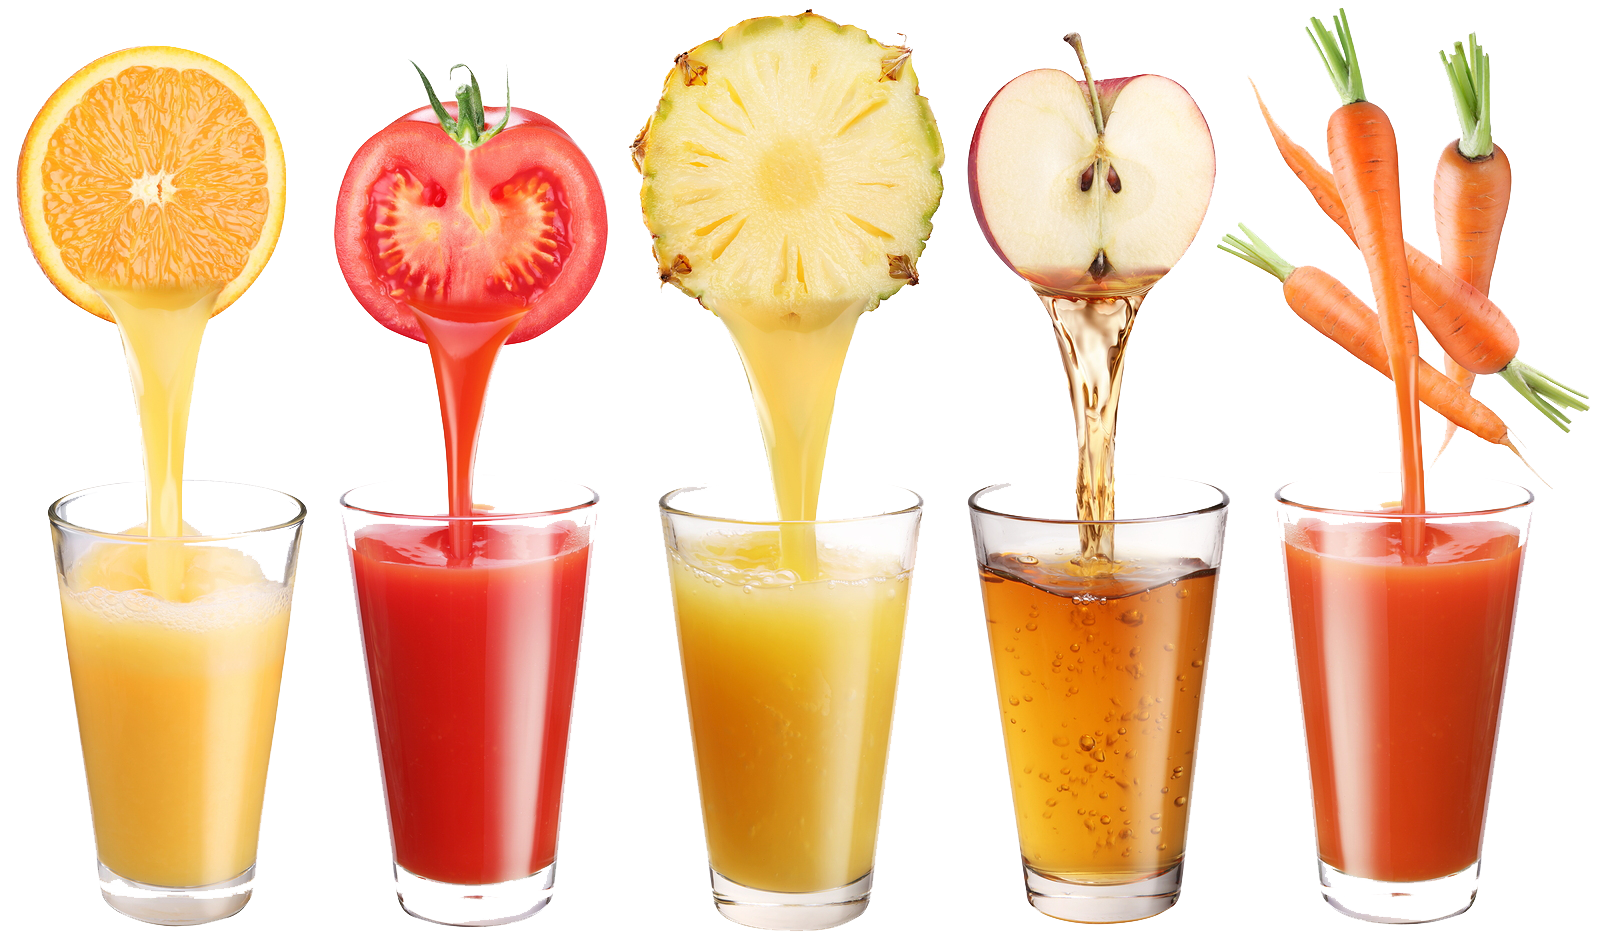 Apple juice clipart png clip art free download Juice Transparent PNG Pictures - Free Icons and PNG Backgrounds clip art free download